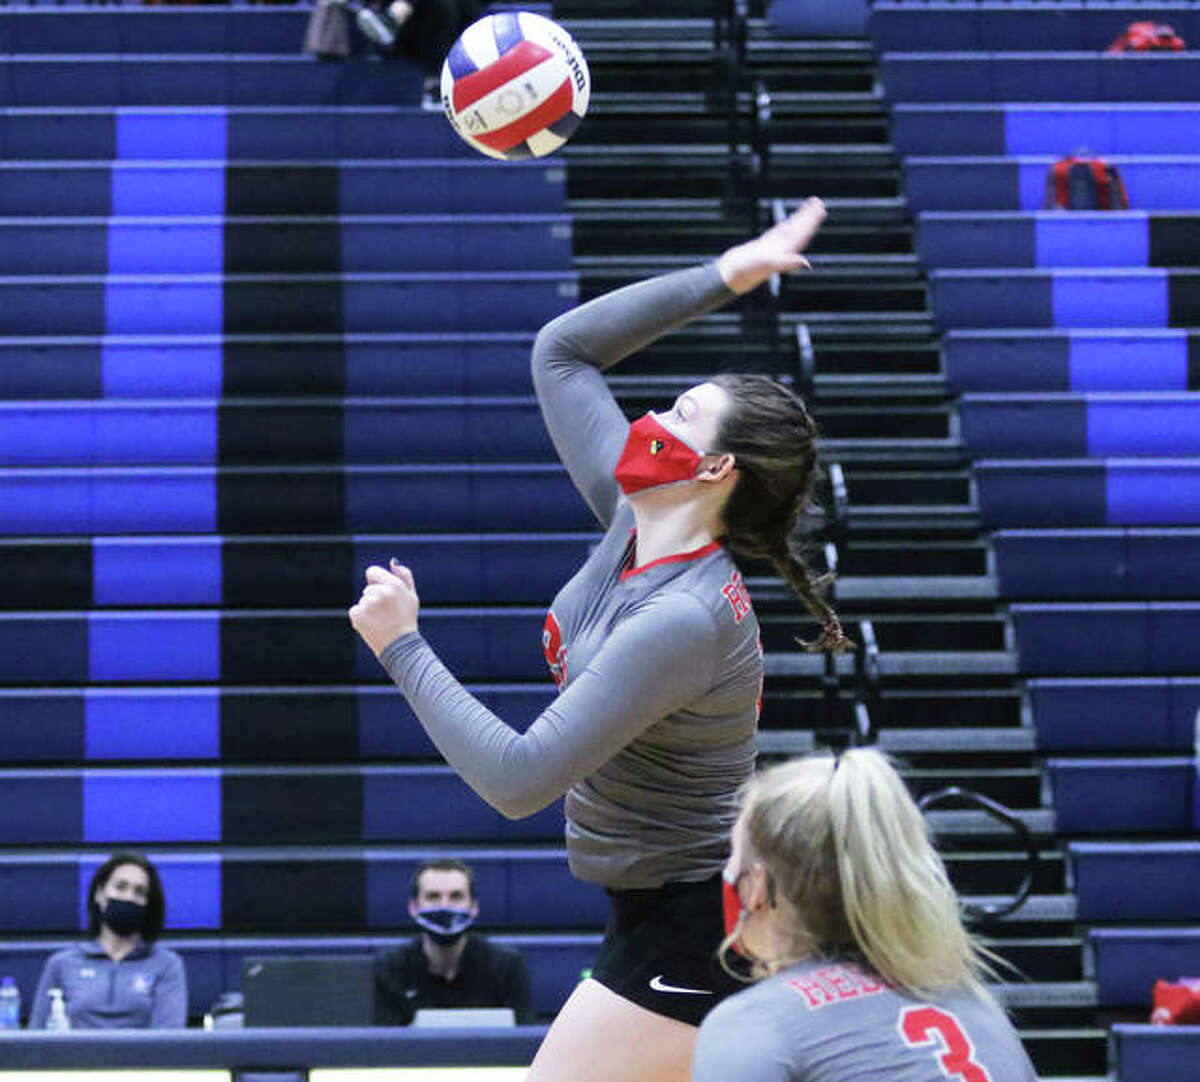 Alton's Brooke Wolff, shown on the attack in a SWC match at Belleville East on March 16, had 16 kills and six blocks on Tuesday night to help the Redbirds end an 18-match SWC losing streak with a three-set win at East St. Louis.